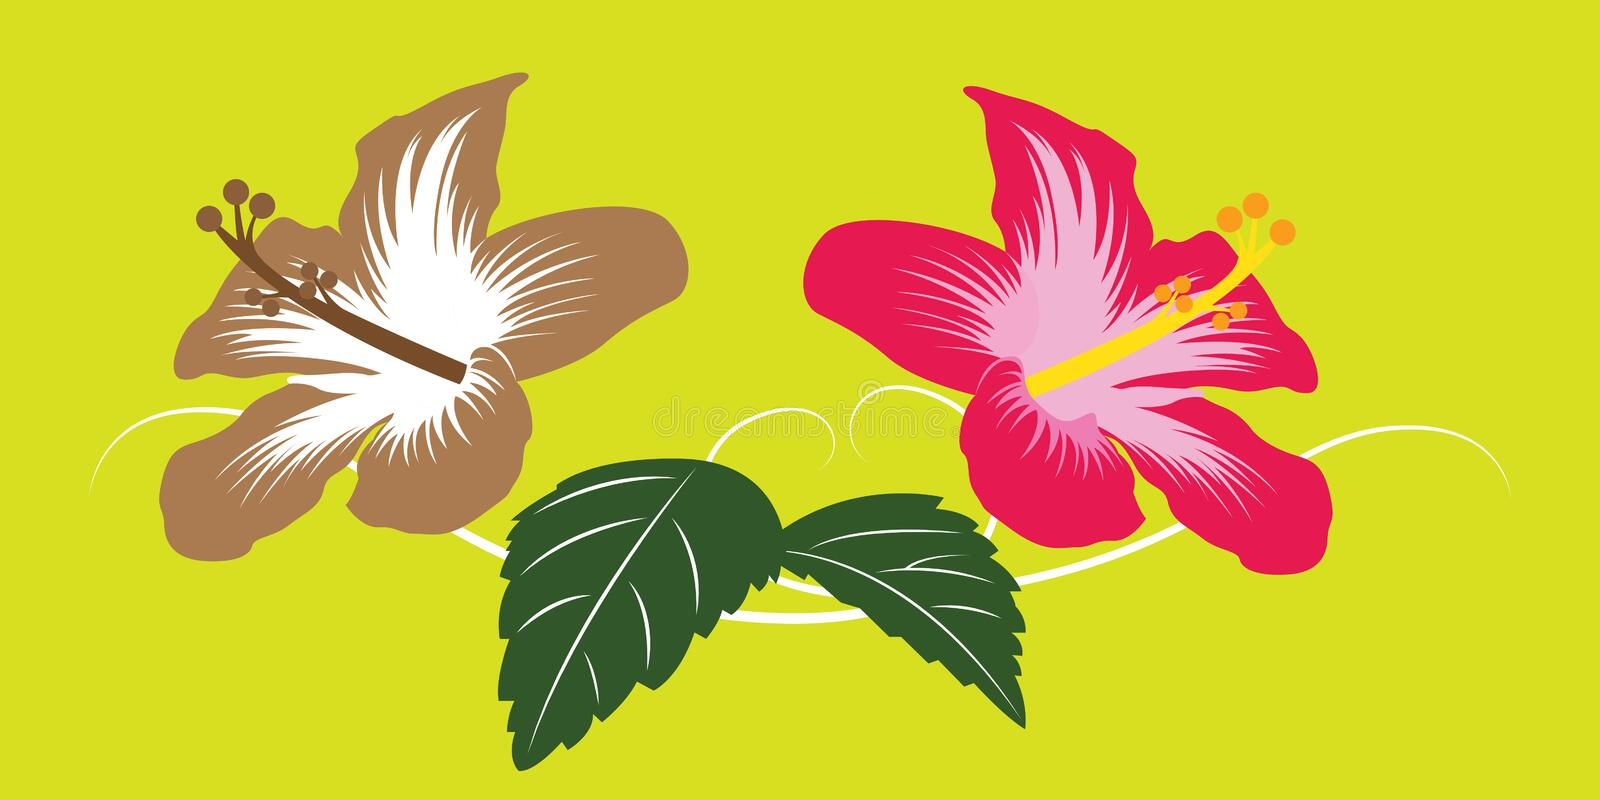 Flower asia stock illustration. Illustration of graphic ...